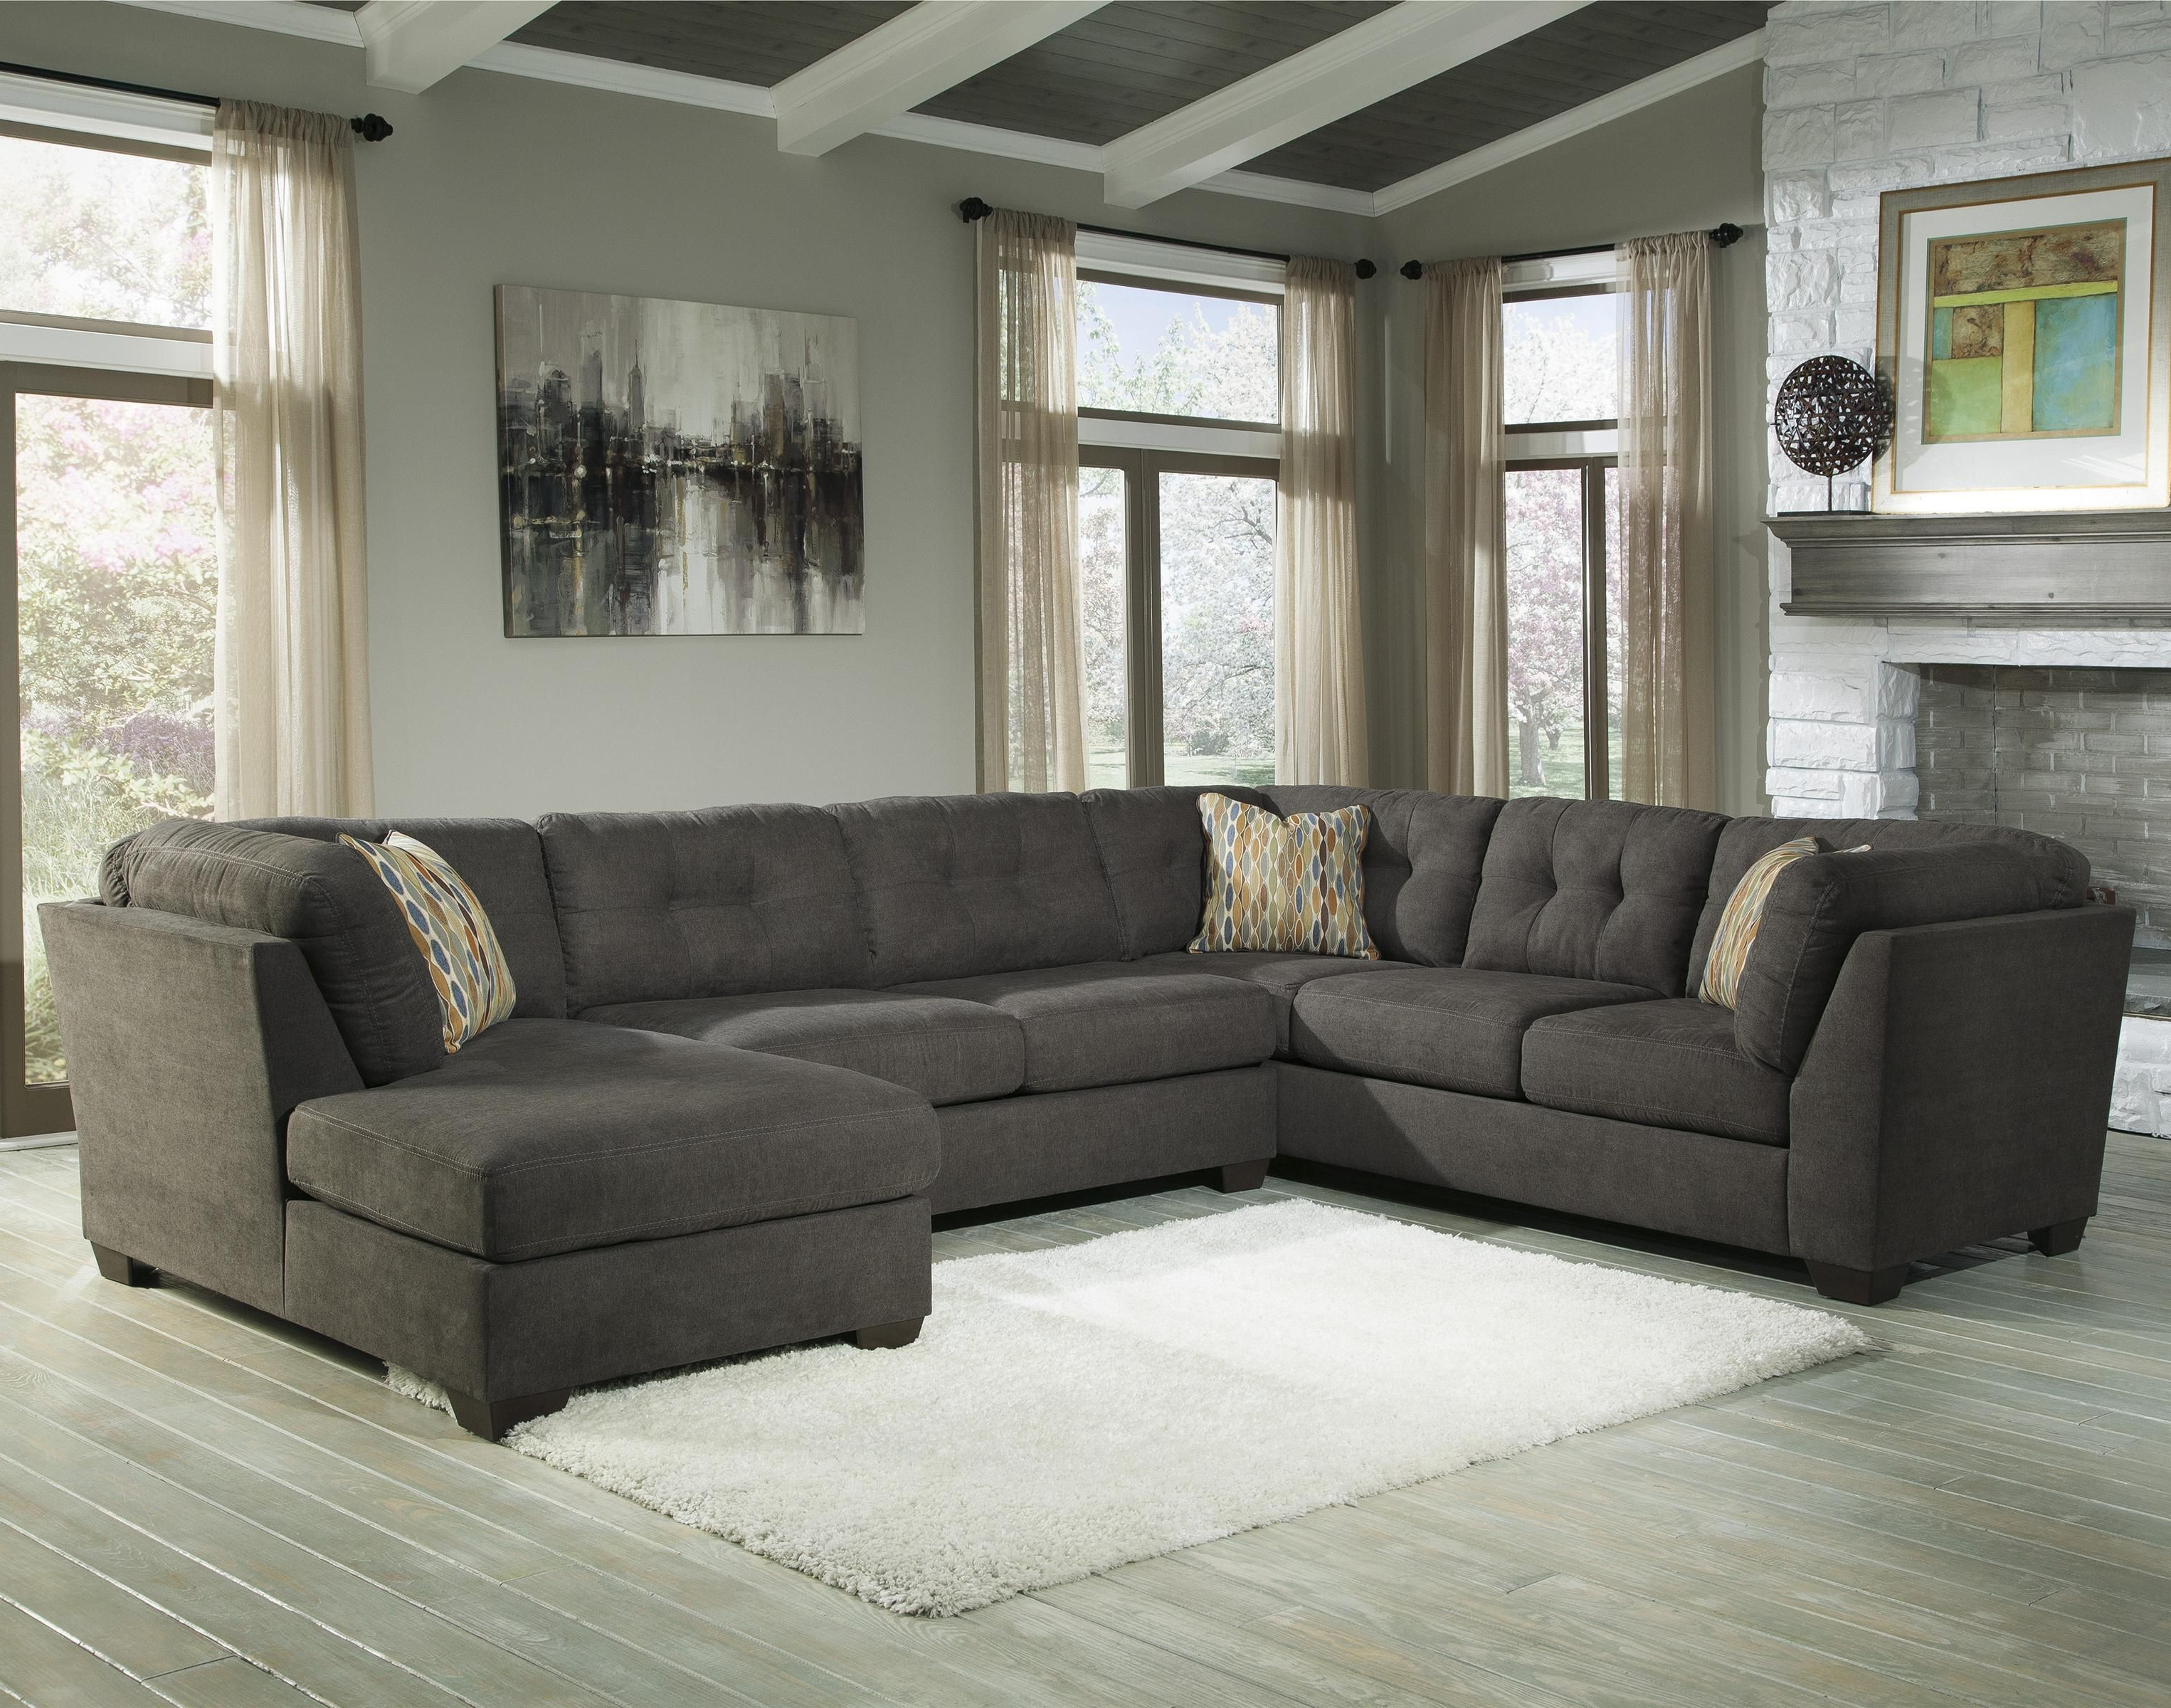 Lucy Grey 2 Piece Sleeper Sectionals With Raf Chaise In Famous 3 Piece Sectional Sleeper Sofa Design Inspiration – Designing An (View 9 of 20)